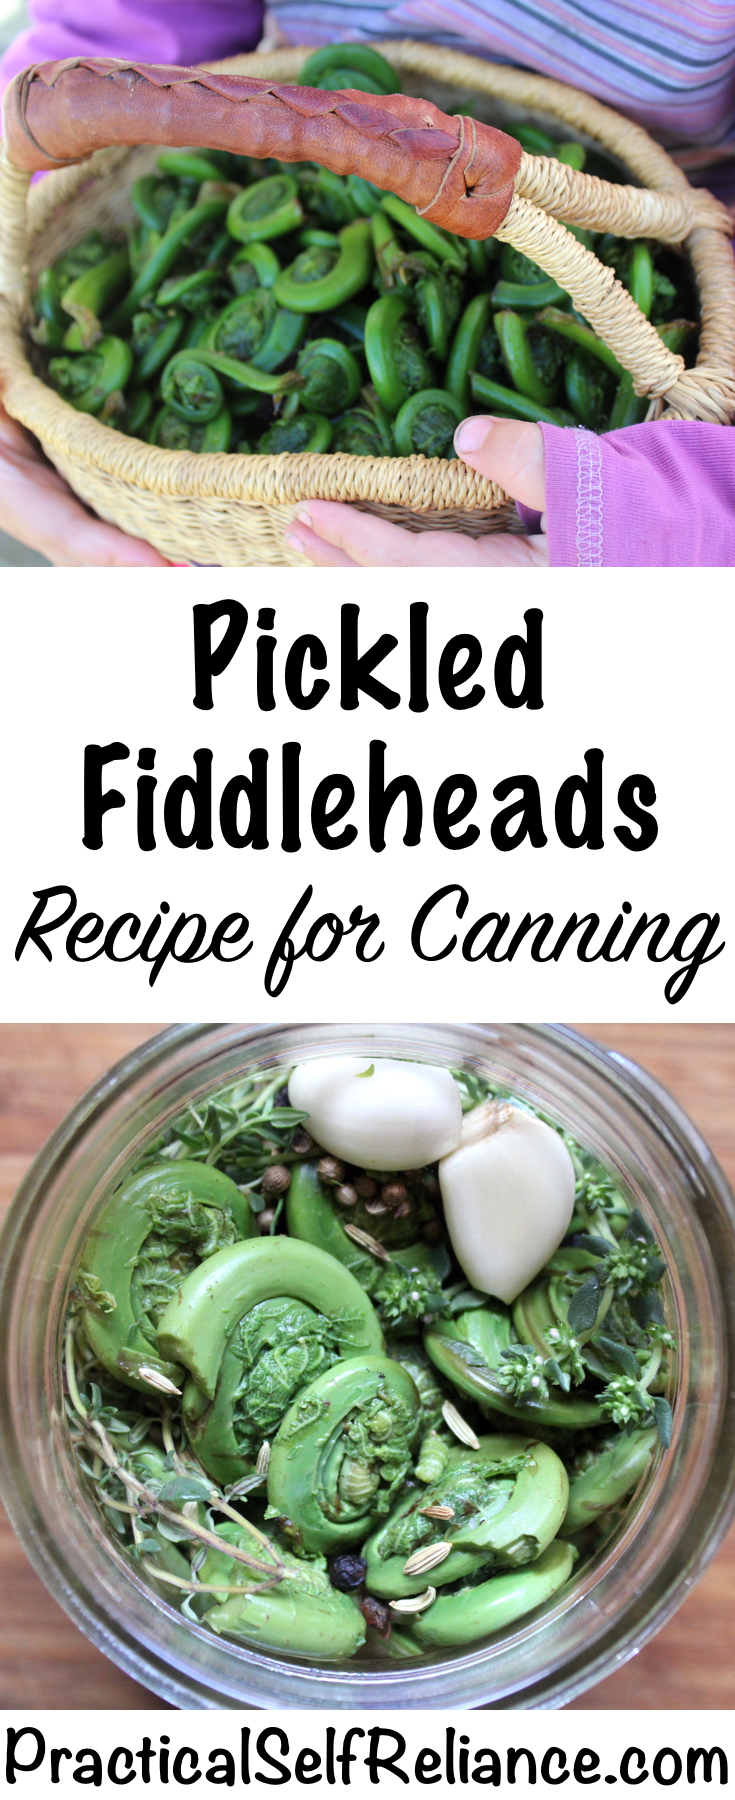 Pickled Fiddleheads ~ Recipe for Canning #fiddleheads #fiddlehead #ferns #foraging #wildfood #forage #selfsufficiency  #wildfood #wildcrafting #canning #foodpreservation